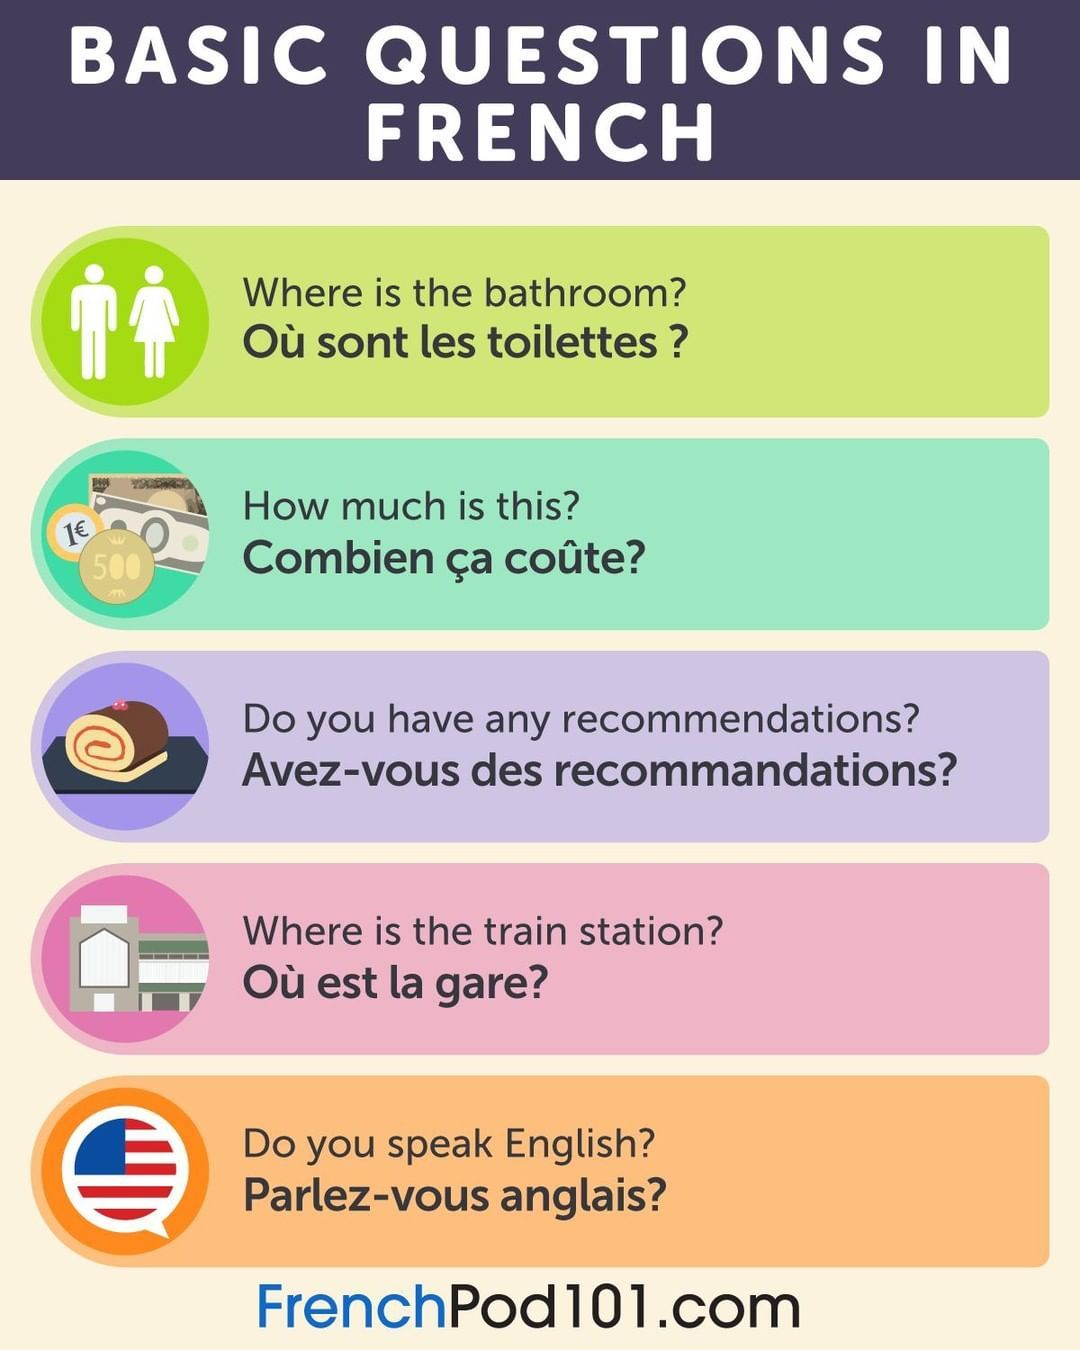 Frenchpod101 On Instagram What S Your Ultimate Question In French French Frenchquestion Frenchpod10 Learning Spanish Learn French This Or That Questions